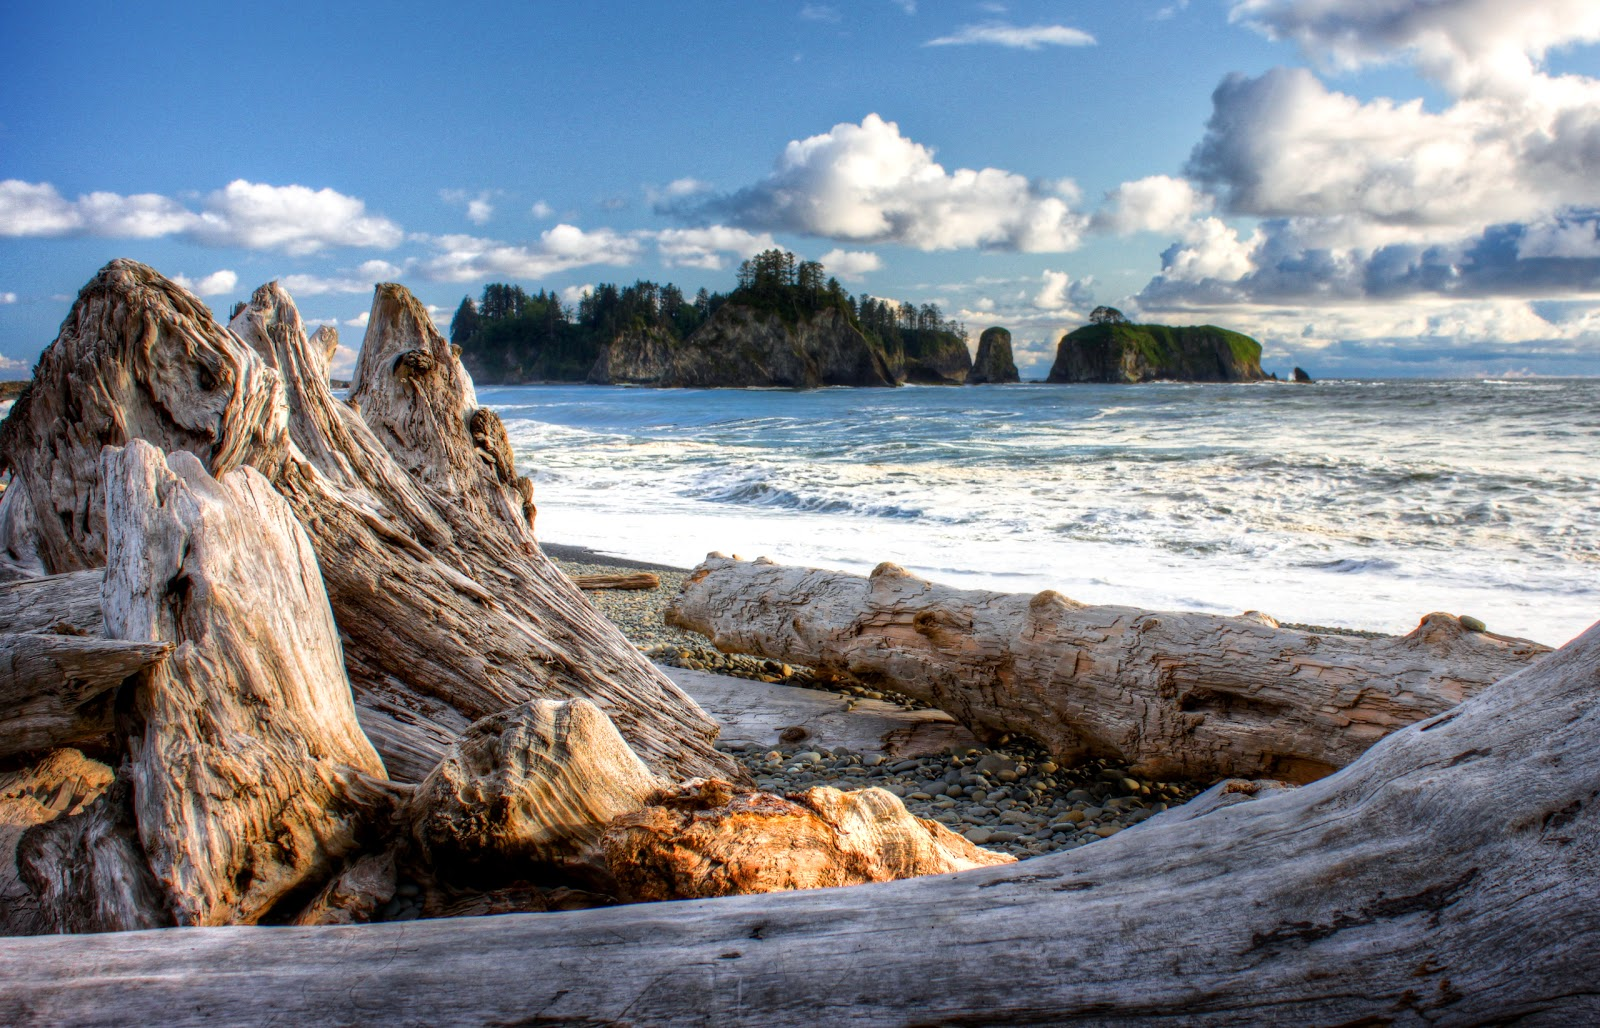 washington places beach rialto visit state sea place stacks olympic coast pacific national park truly vacation beaches cool elf parks